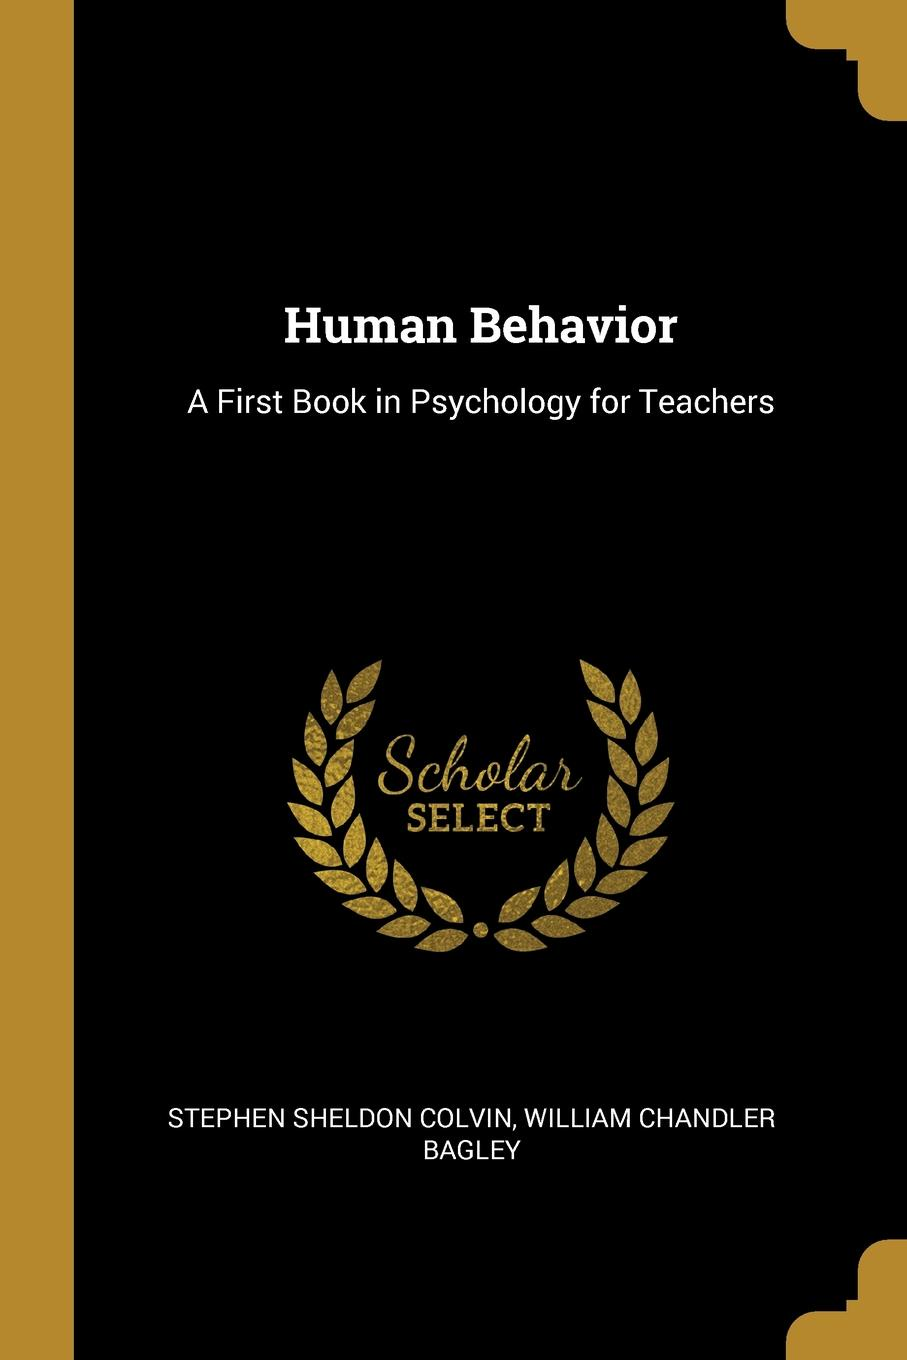 William Chandler Bagley Sheldon Colvin. Human Behavior. A First Book in Psychology for Teachers